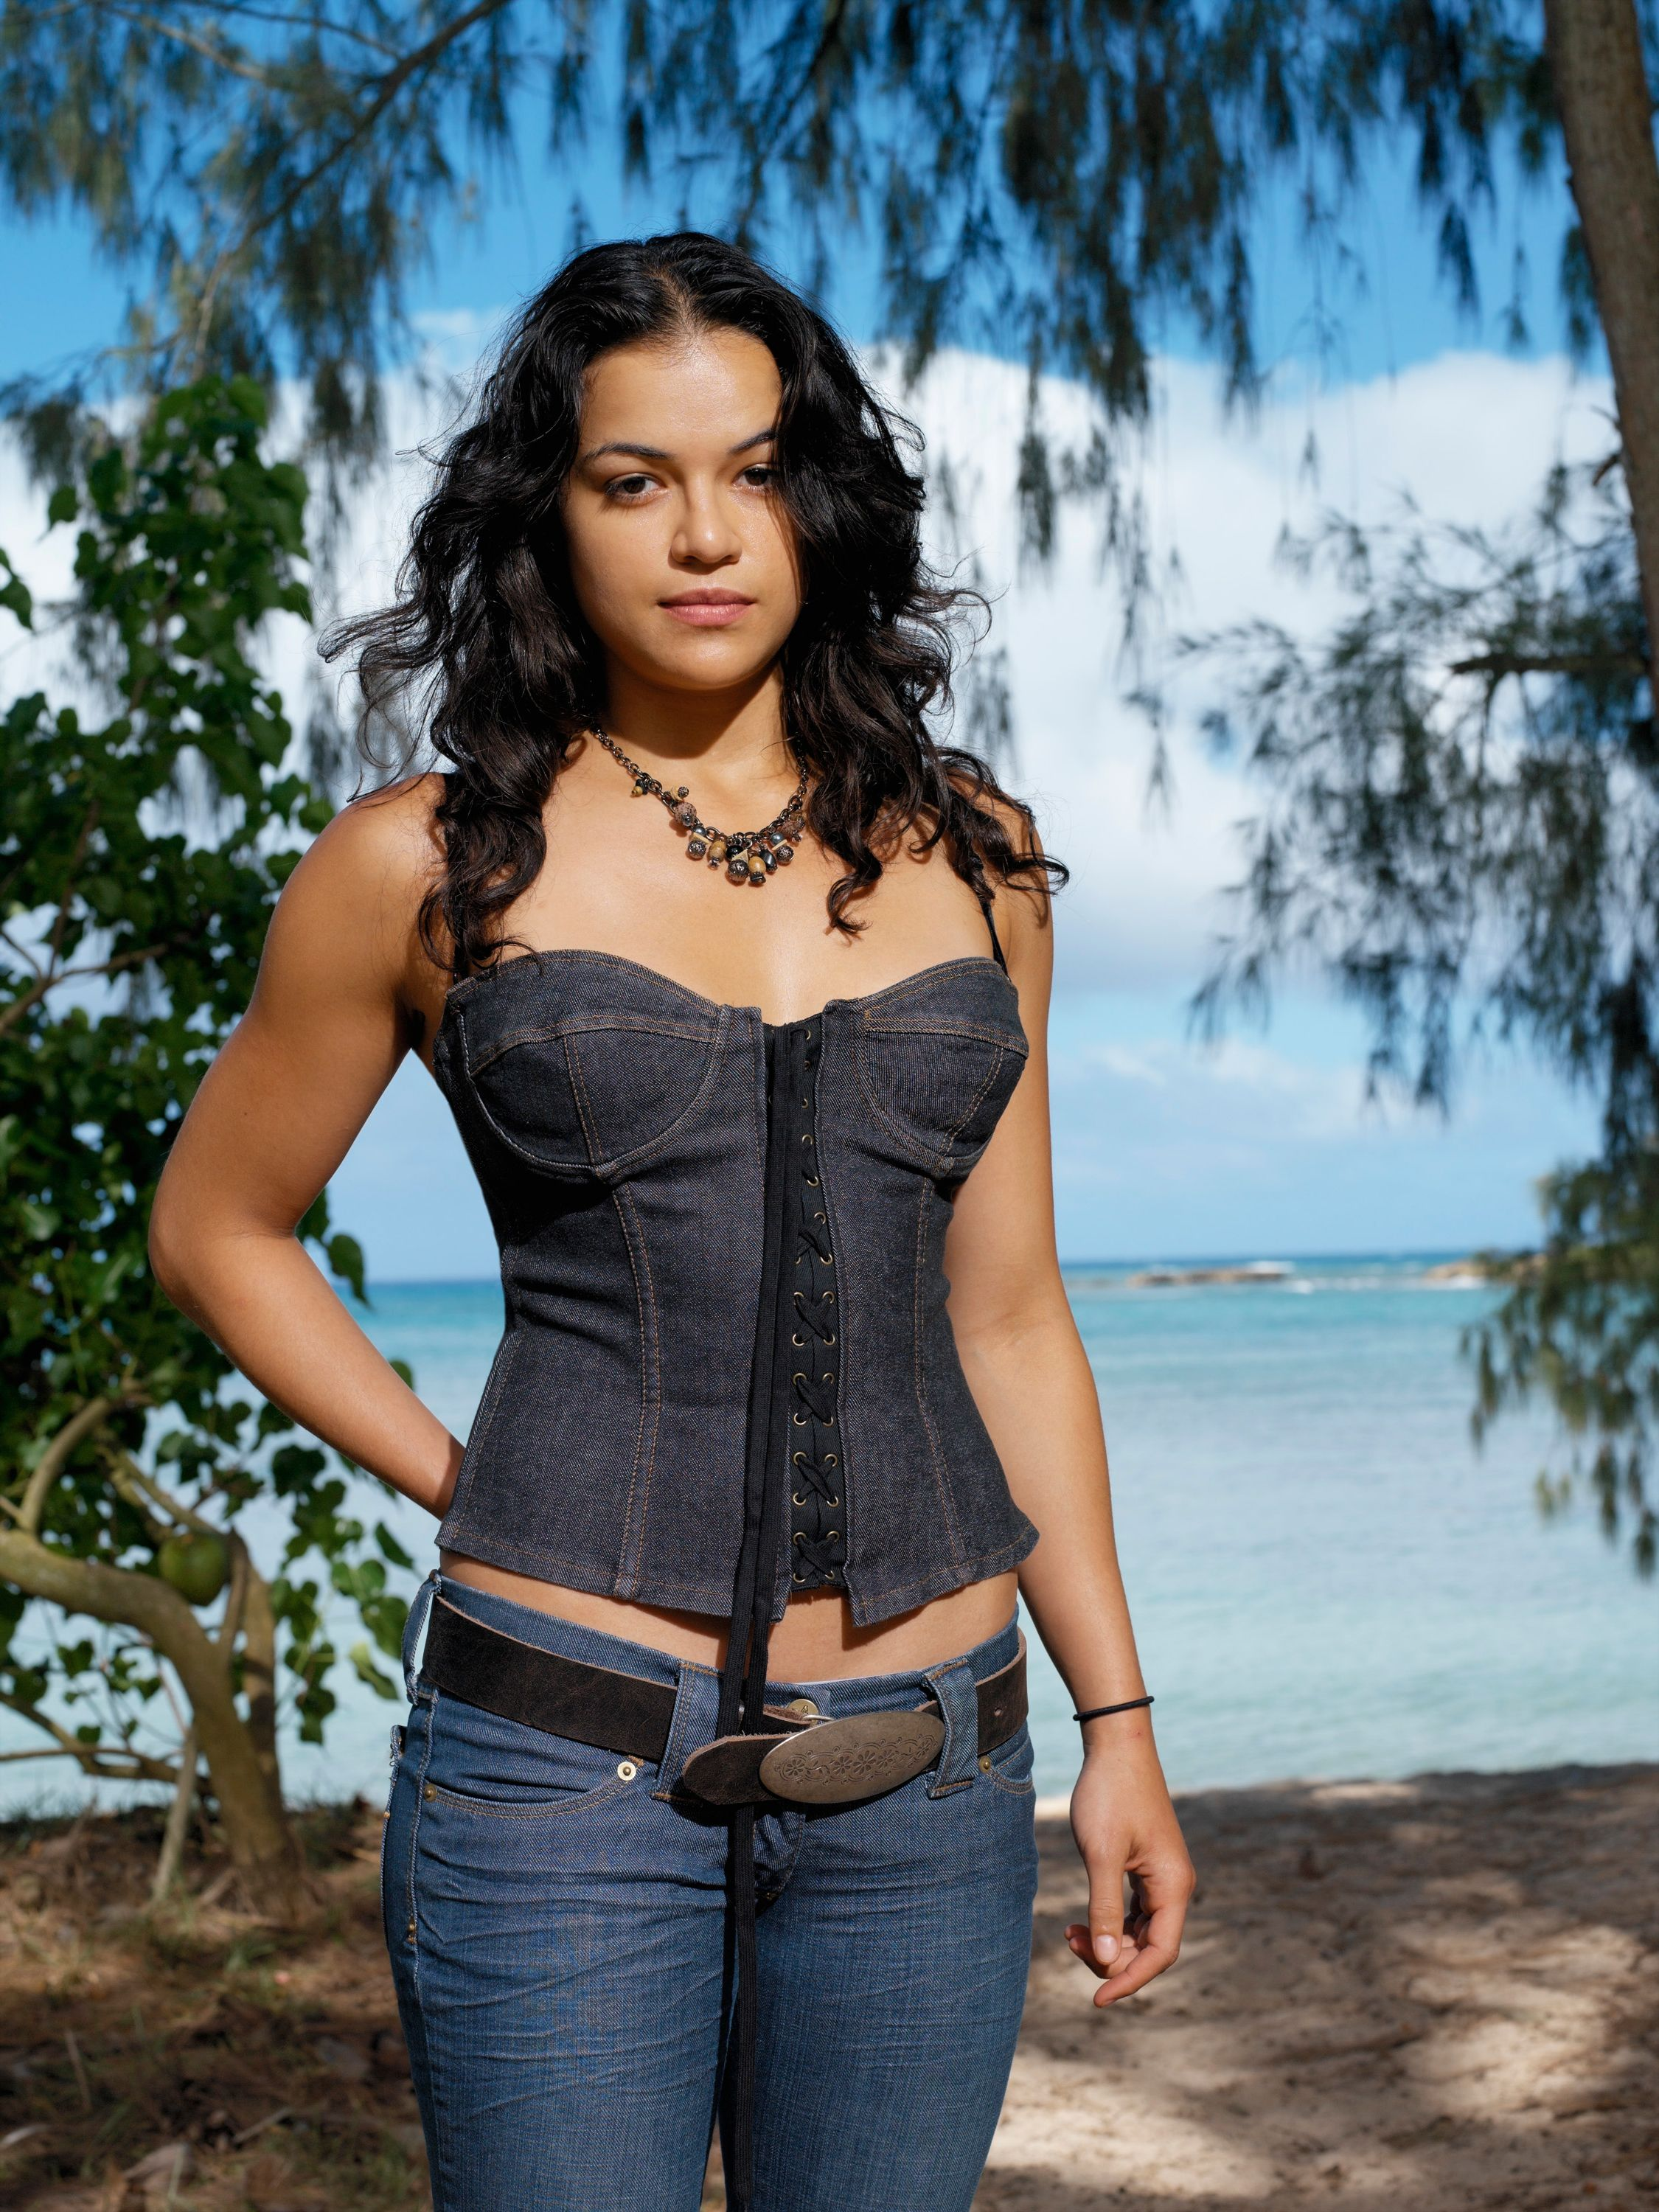 swimsuit Pictures Michelle Rodriguez naked photo 2017